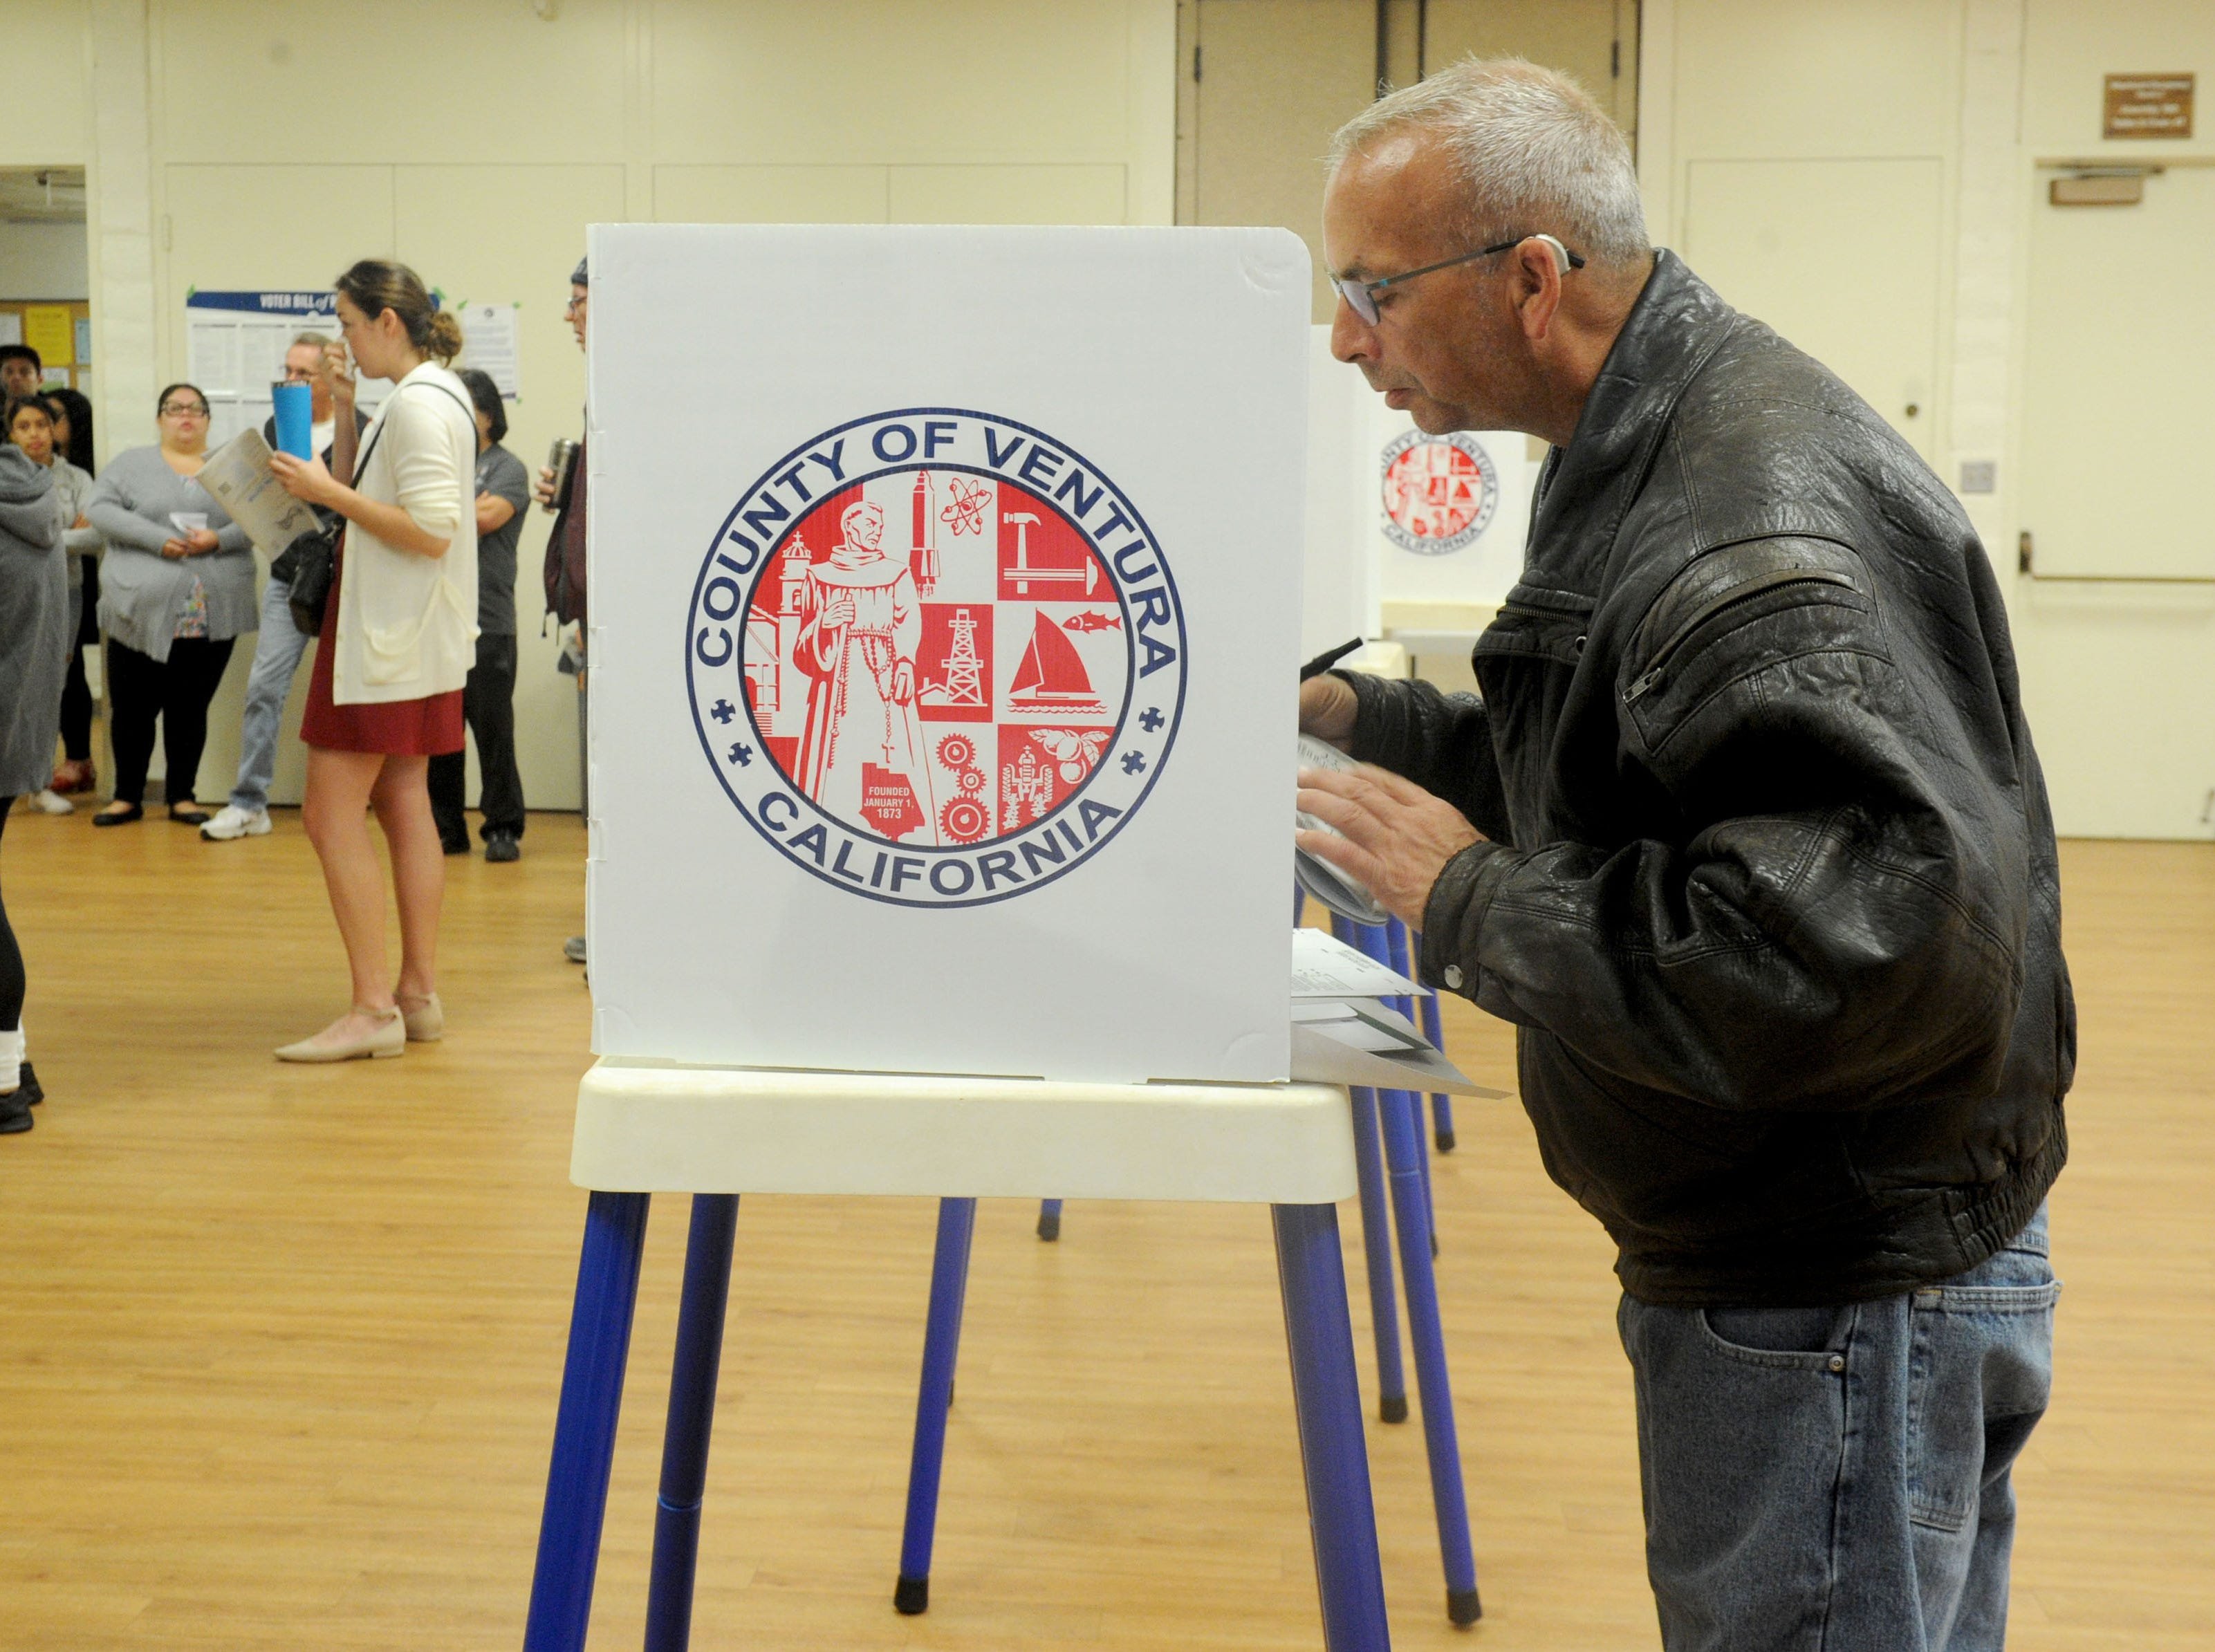 Steven Bienvenu was the first person to vote Tuesday morning at the Ventura Avenue Adult Center in Ventura.